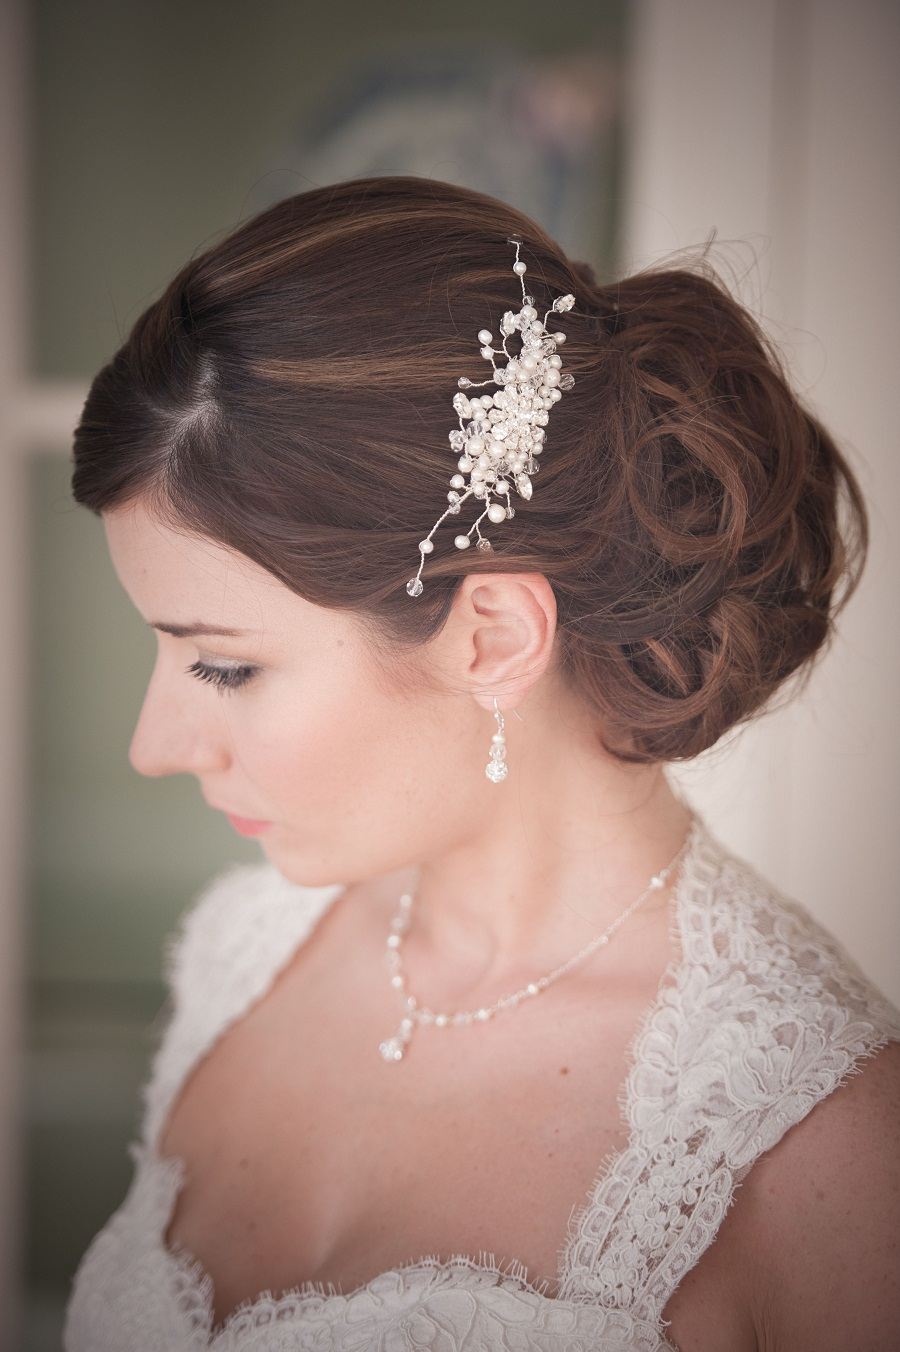 ... Bridal Jewellery & Wedding Hair Accessories | UK Wedding Blog